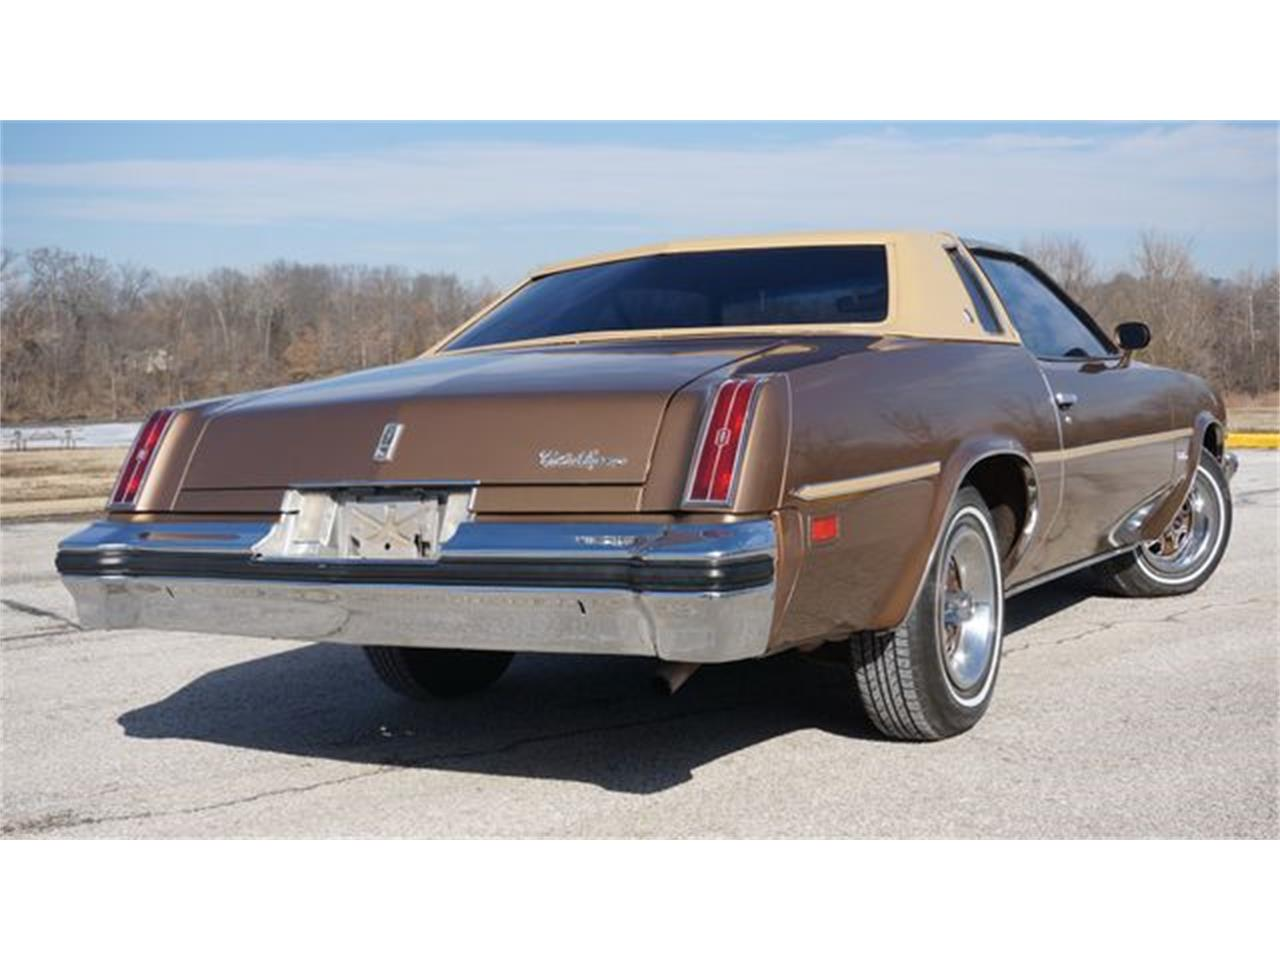 Large Picture of 1976 Cutlass located in Missouri - $9,795.00 - PGQ1